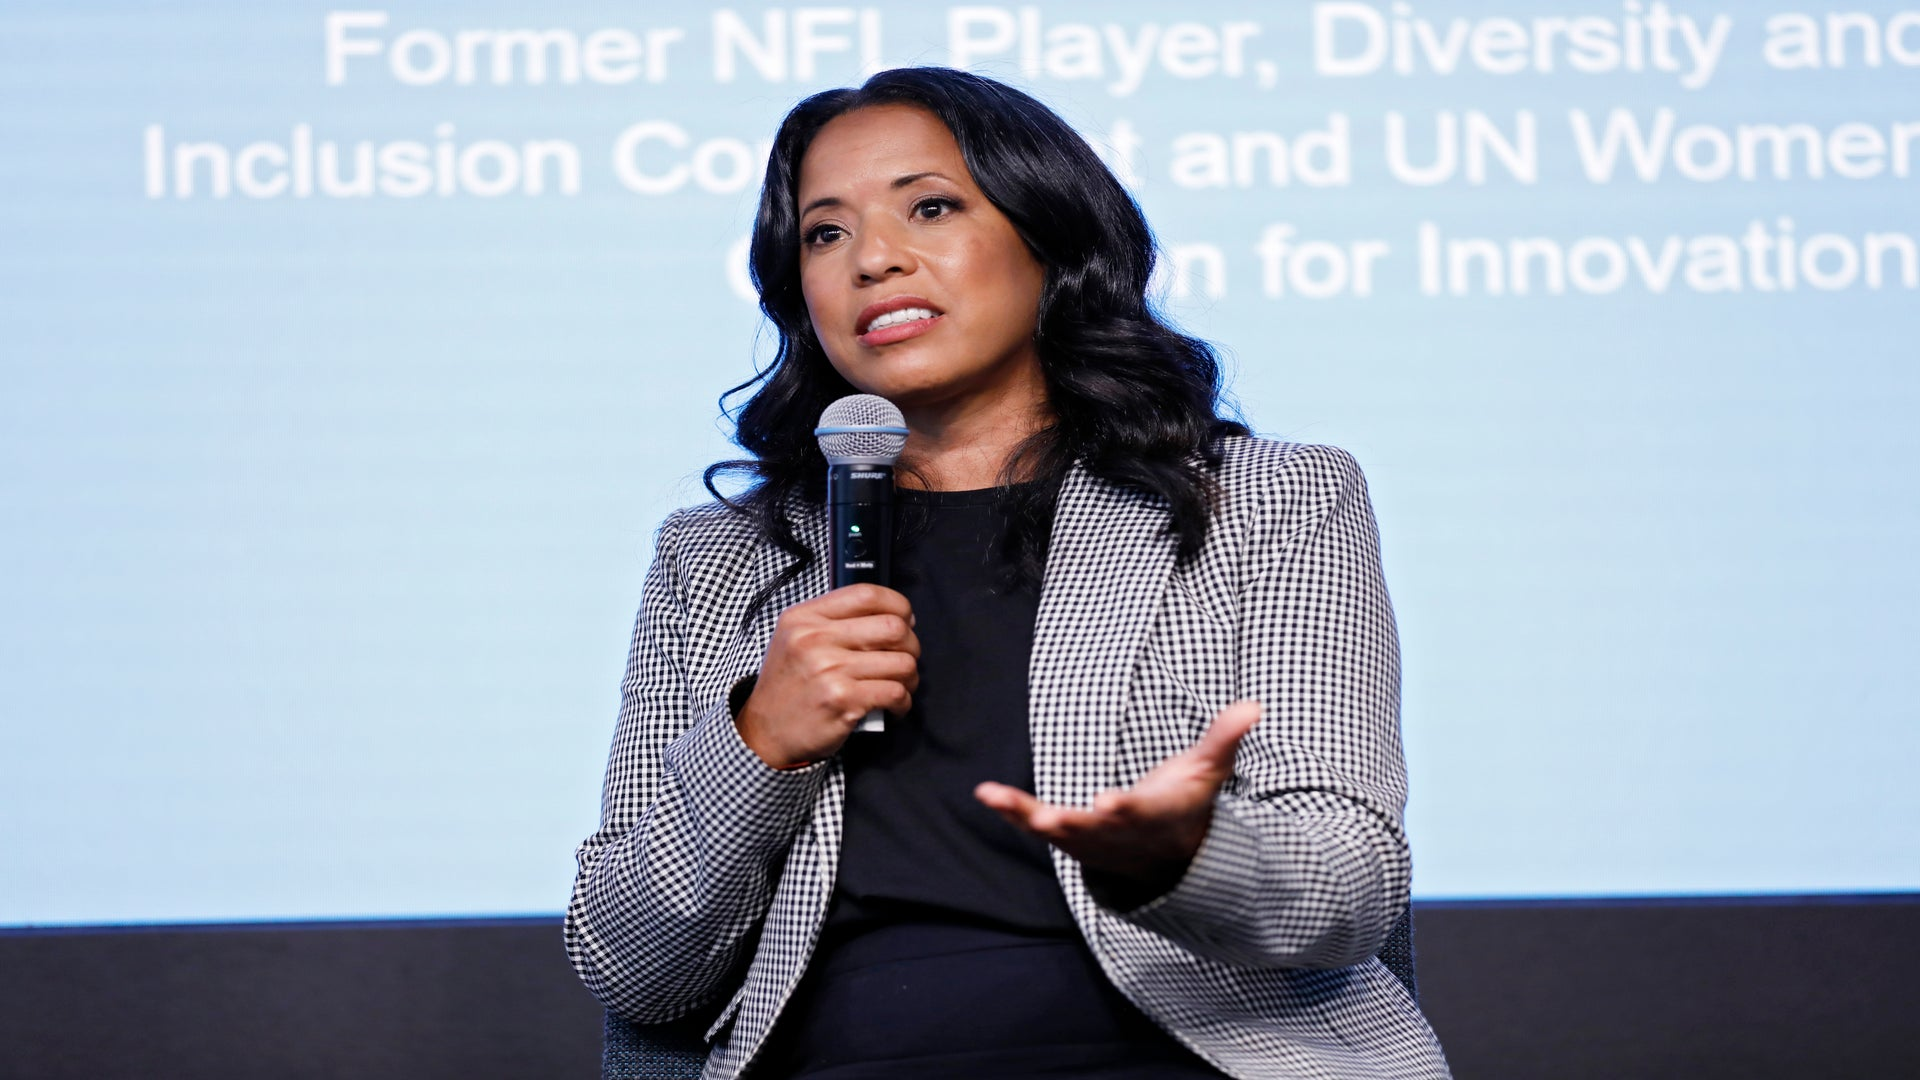 Essence President Michelle Ebanks Joins UN Women, Global Innovation Coalition For Change In Launch Of Gender Innovation Principles